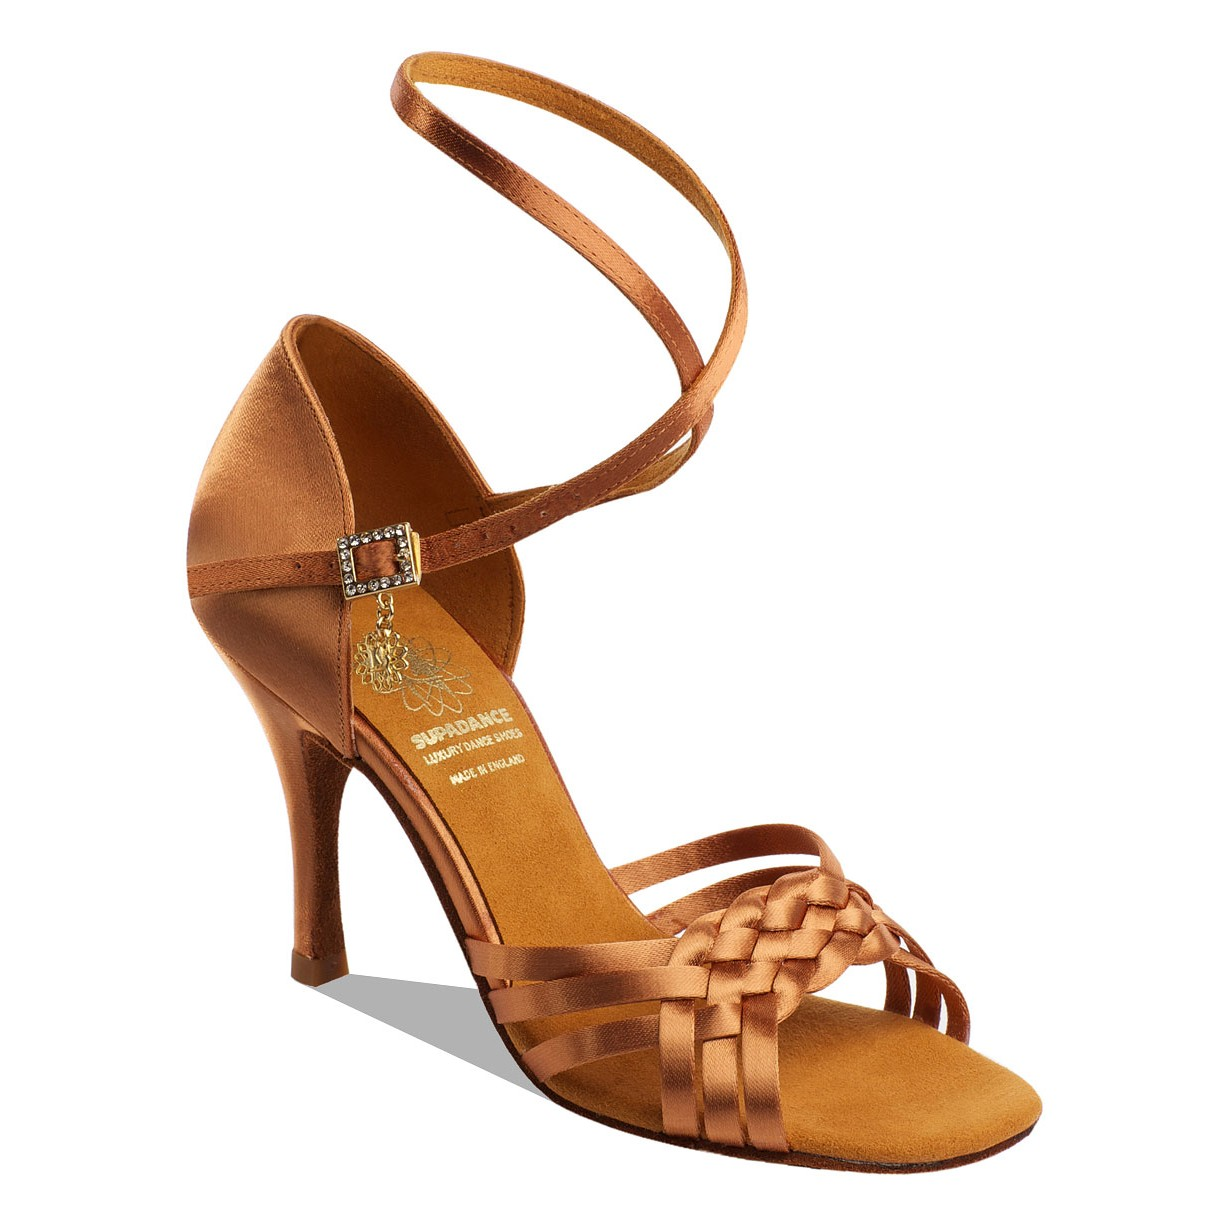 7a7d632652 Women's Latin Shoes, Supadance, Style 1178, $149.00, from VEdance, the very  best in ballroom and Latin dance shoes and dancewear.